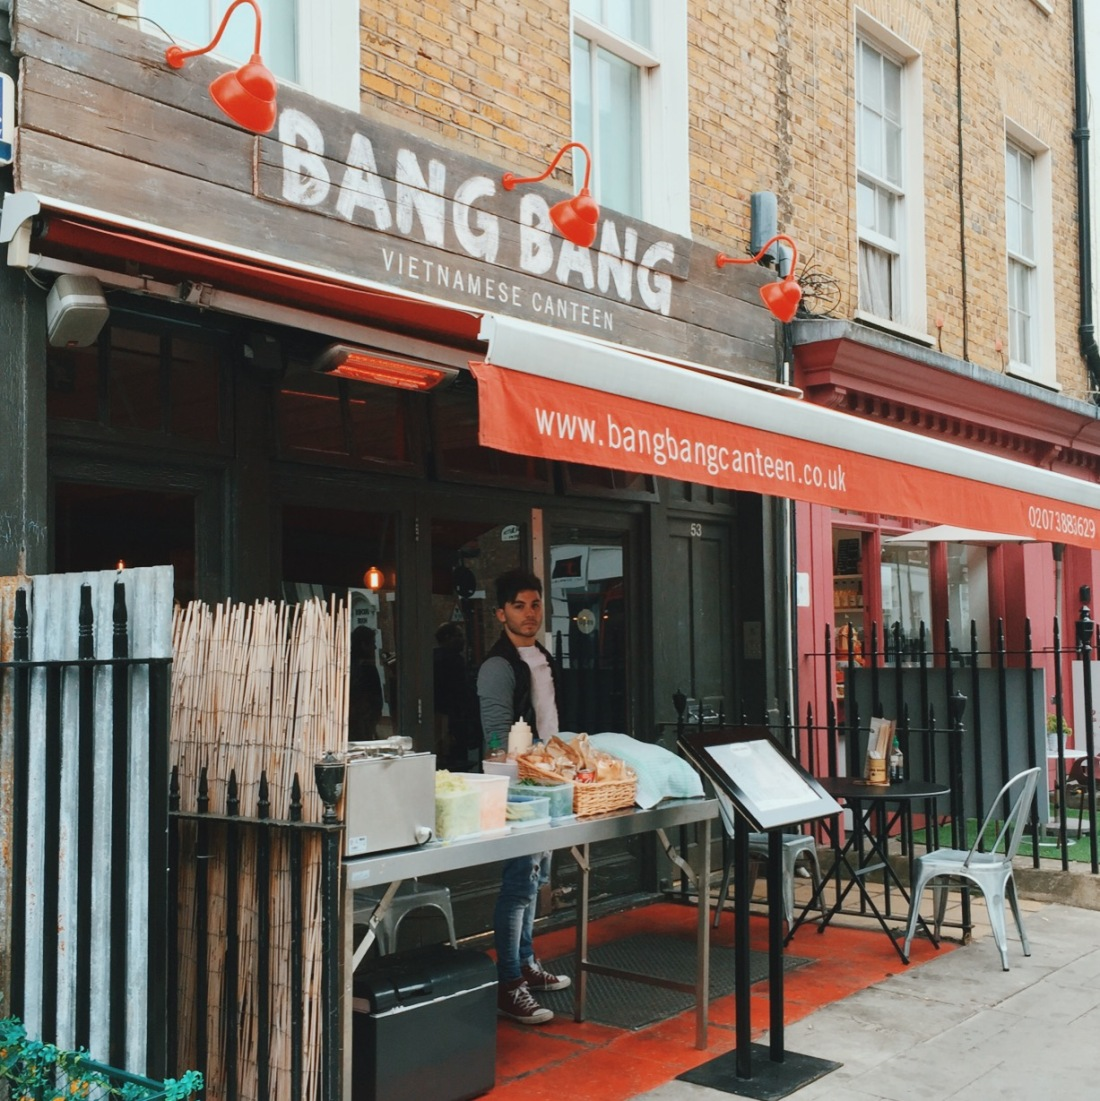 Bang Bang Vietnamese Canteen review London Soho and Fitzrovia